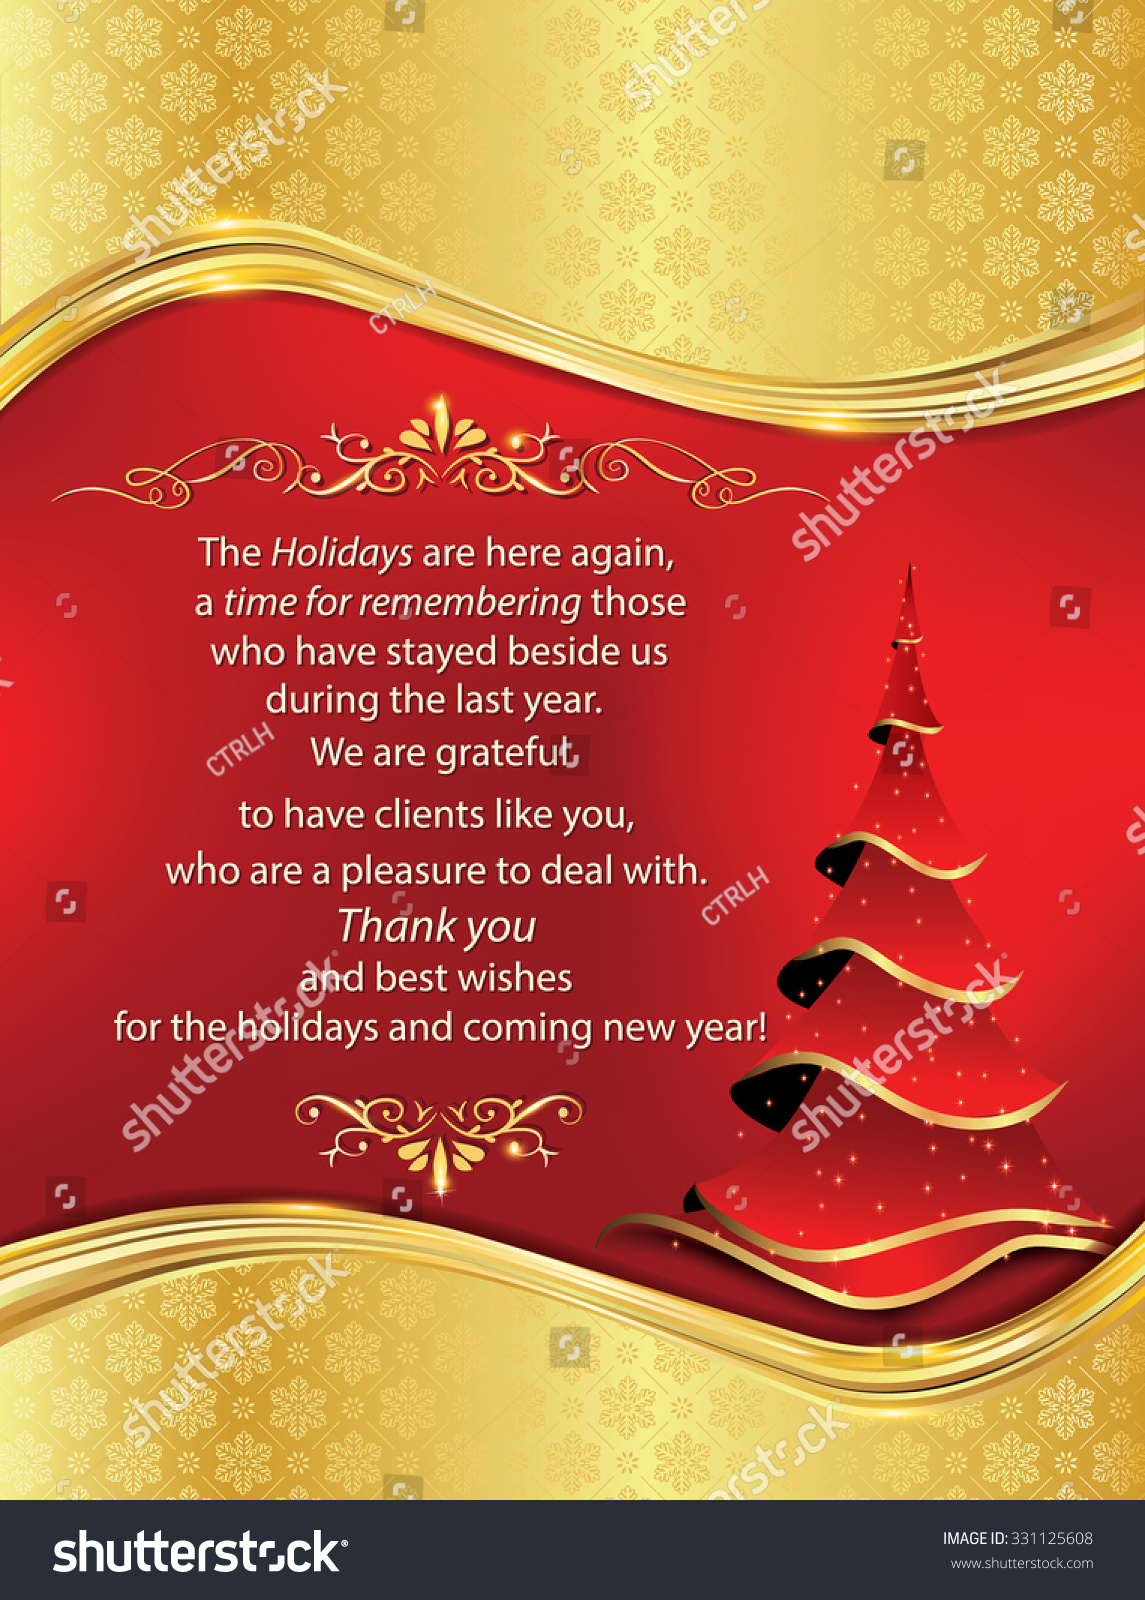 Business Thank You Greeting Card Christmas Stock Illustration